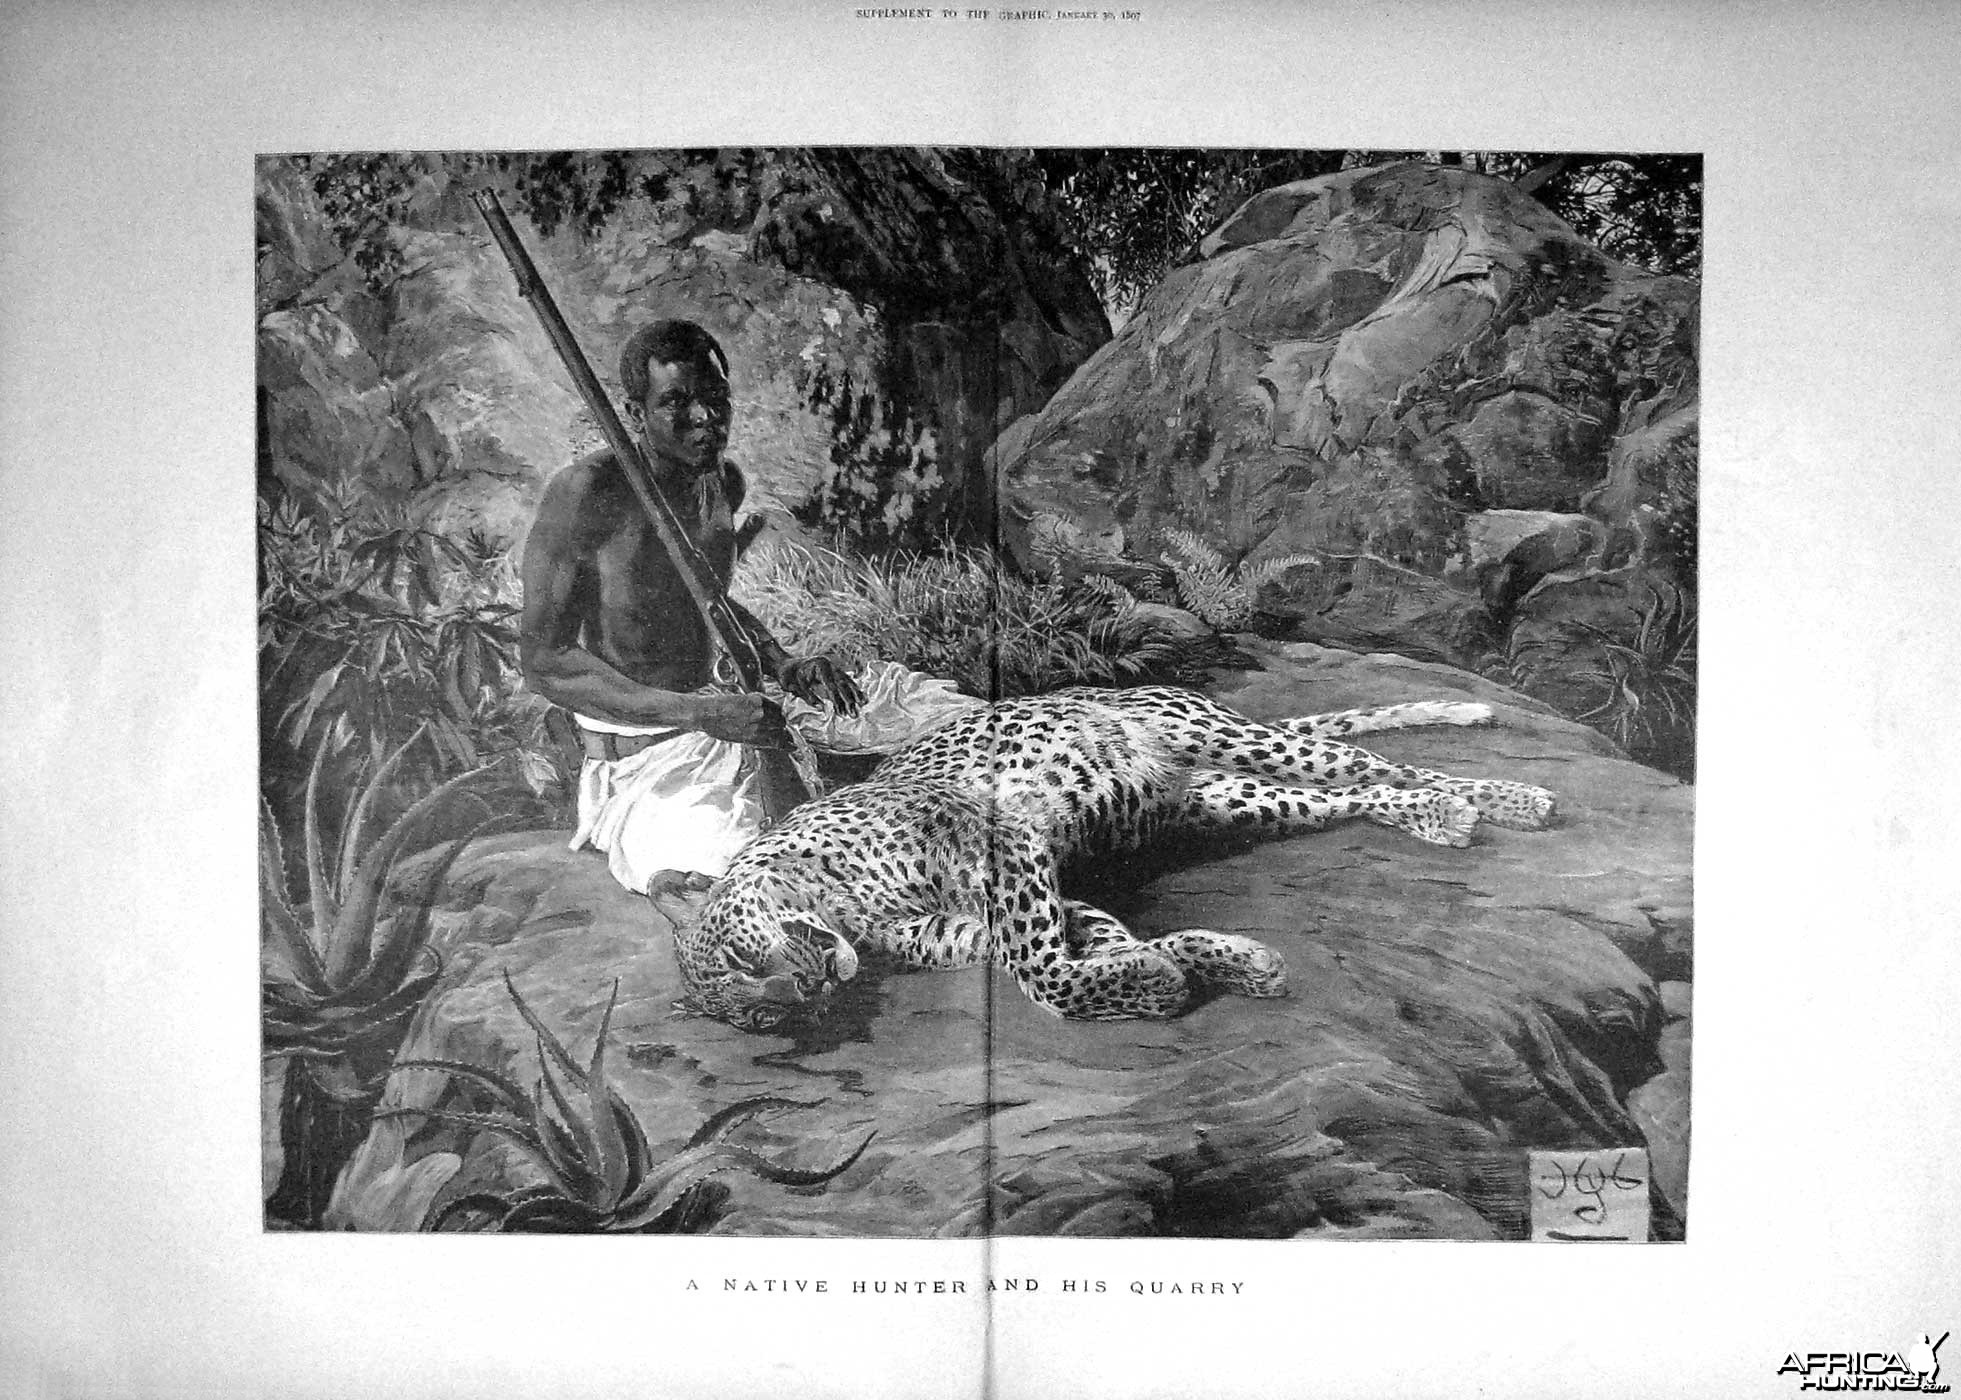 A native hunter and his query - Leopard